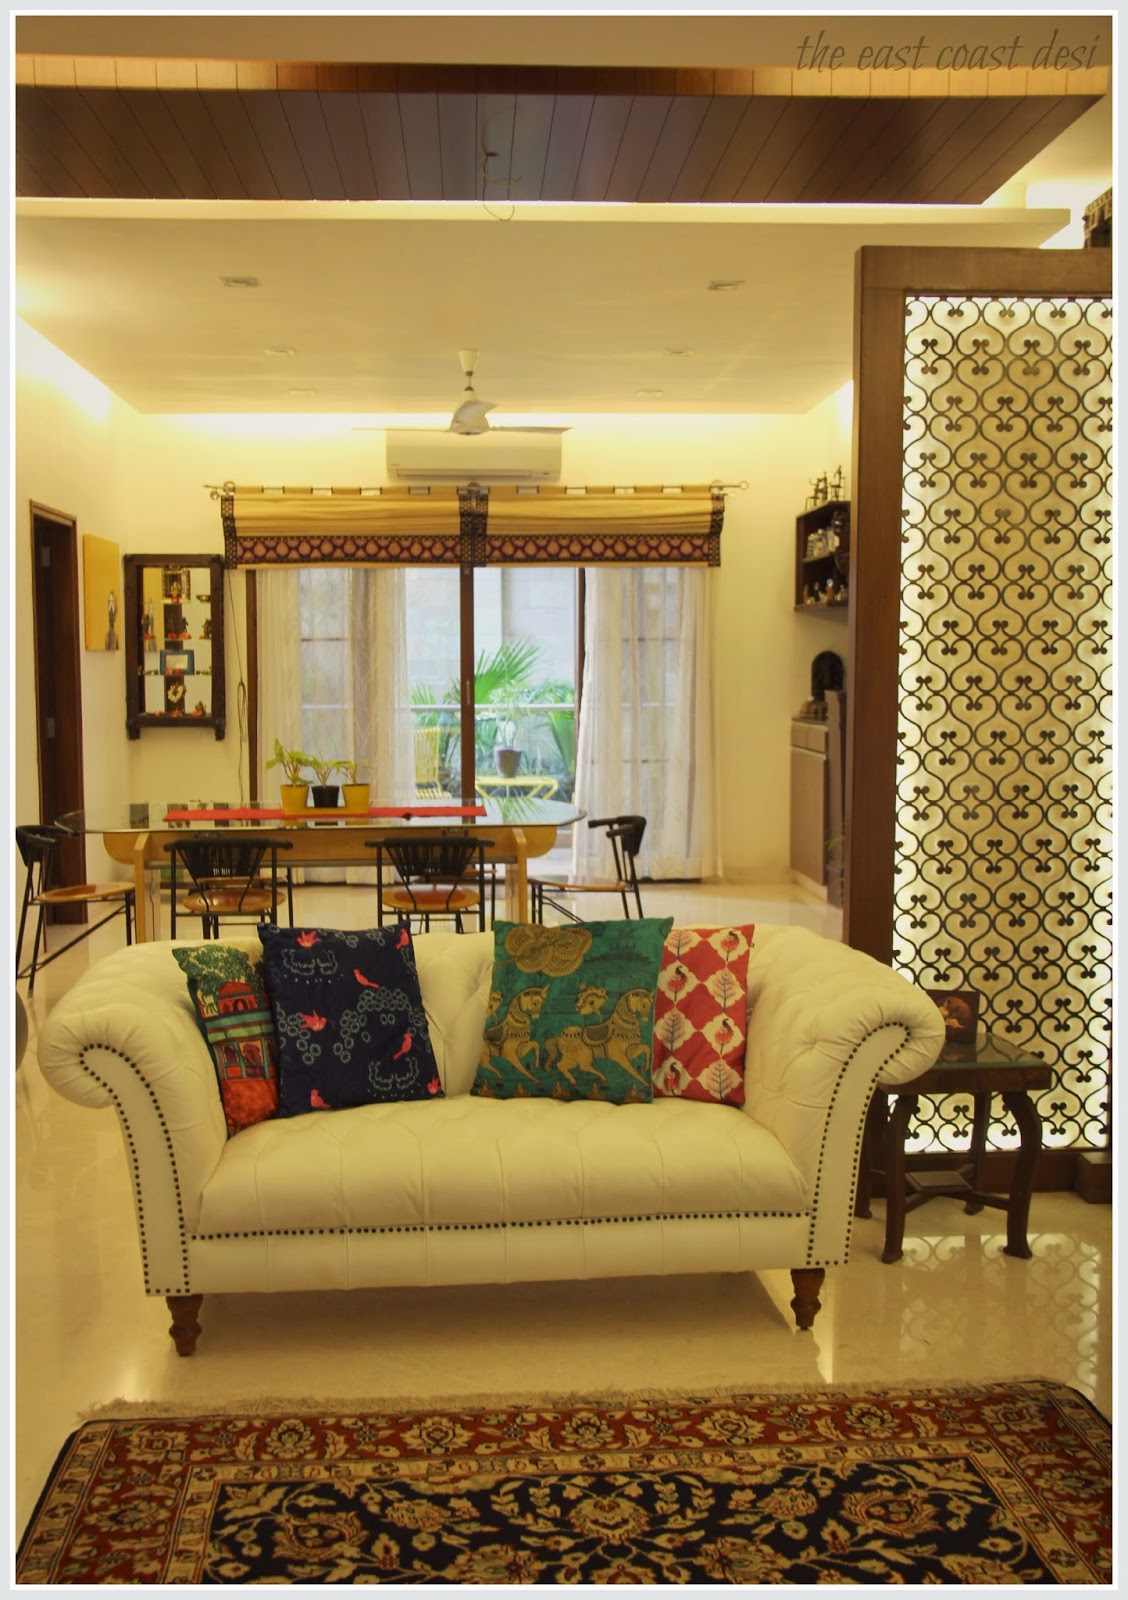 The east coast desi masterful mixing home tour for Indian interior design